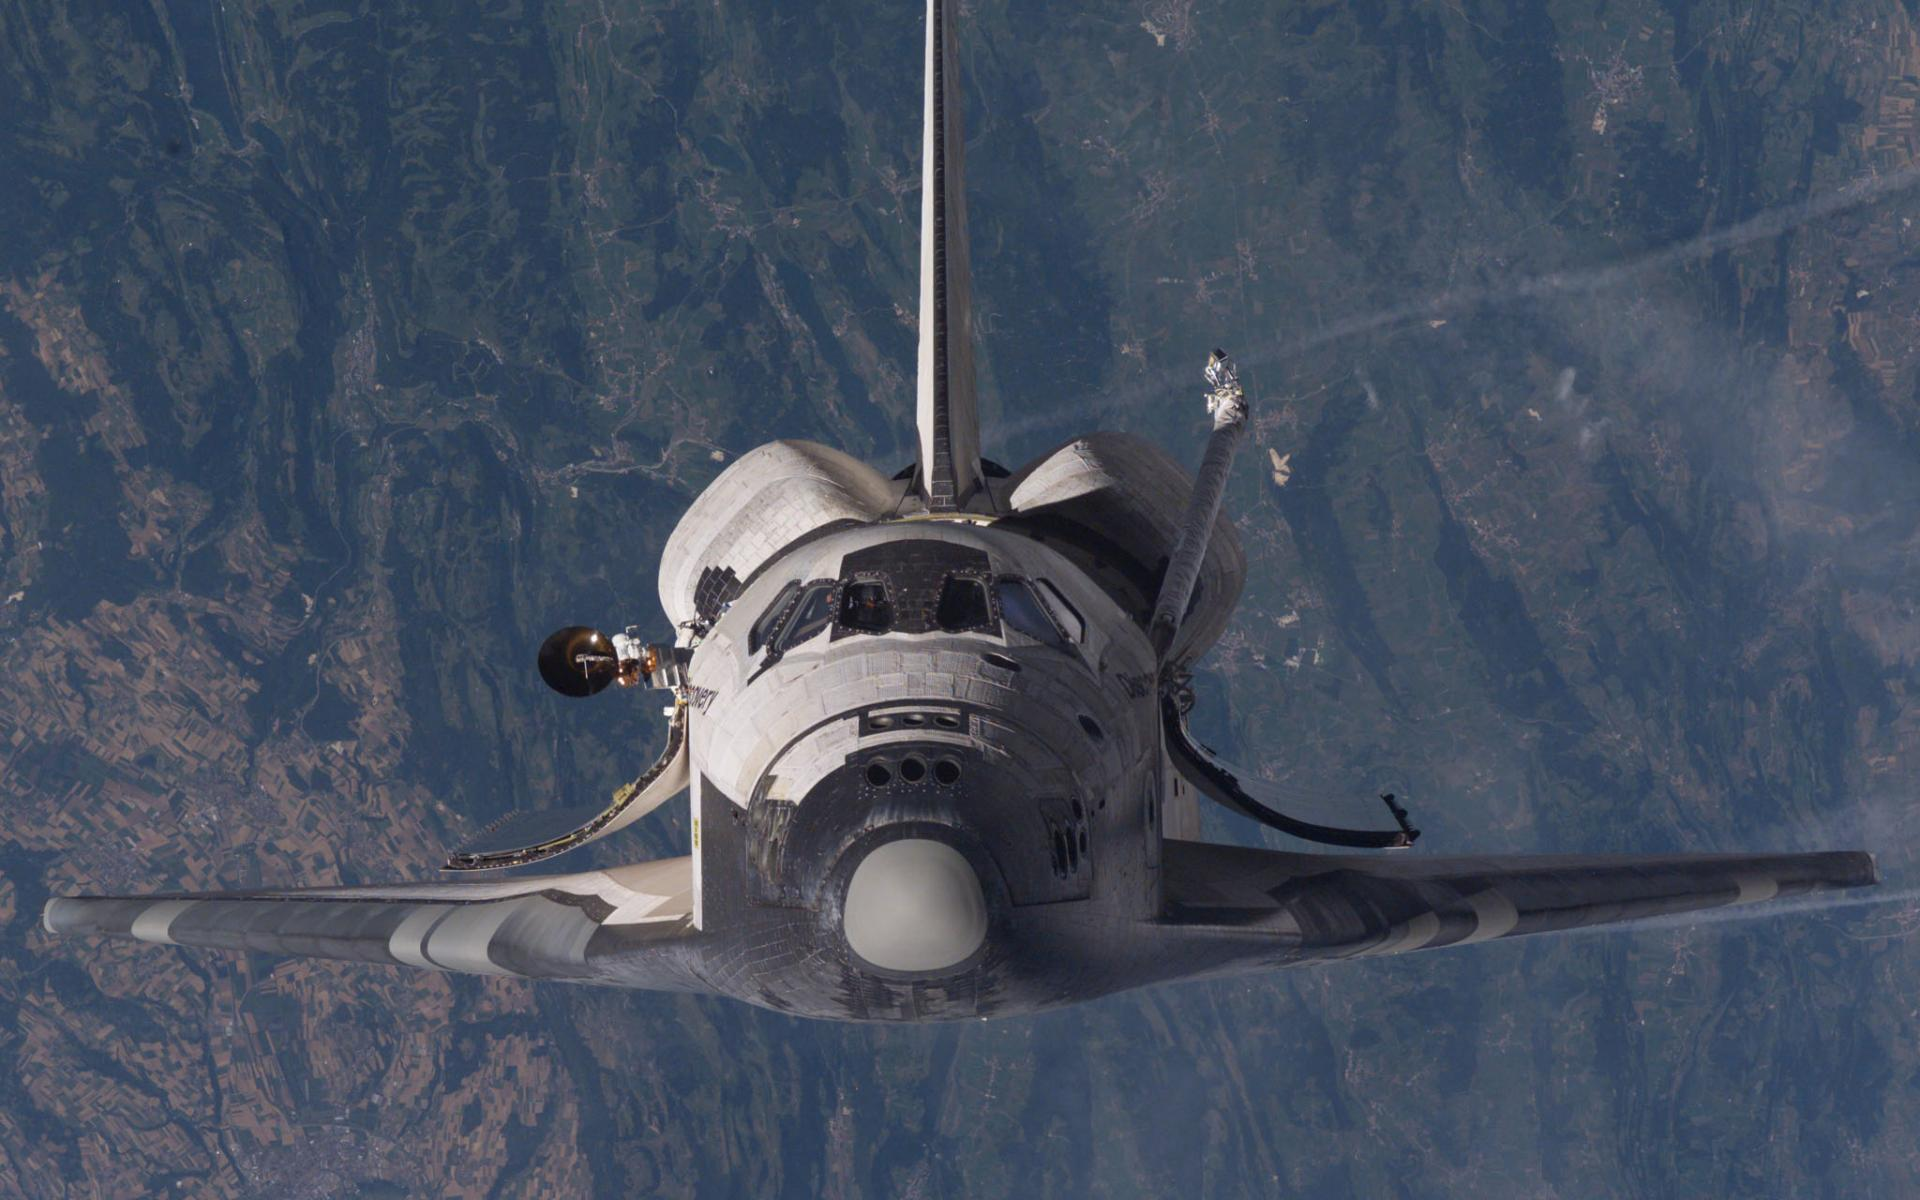 Nasa, space shuttle wallpaper